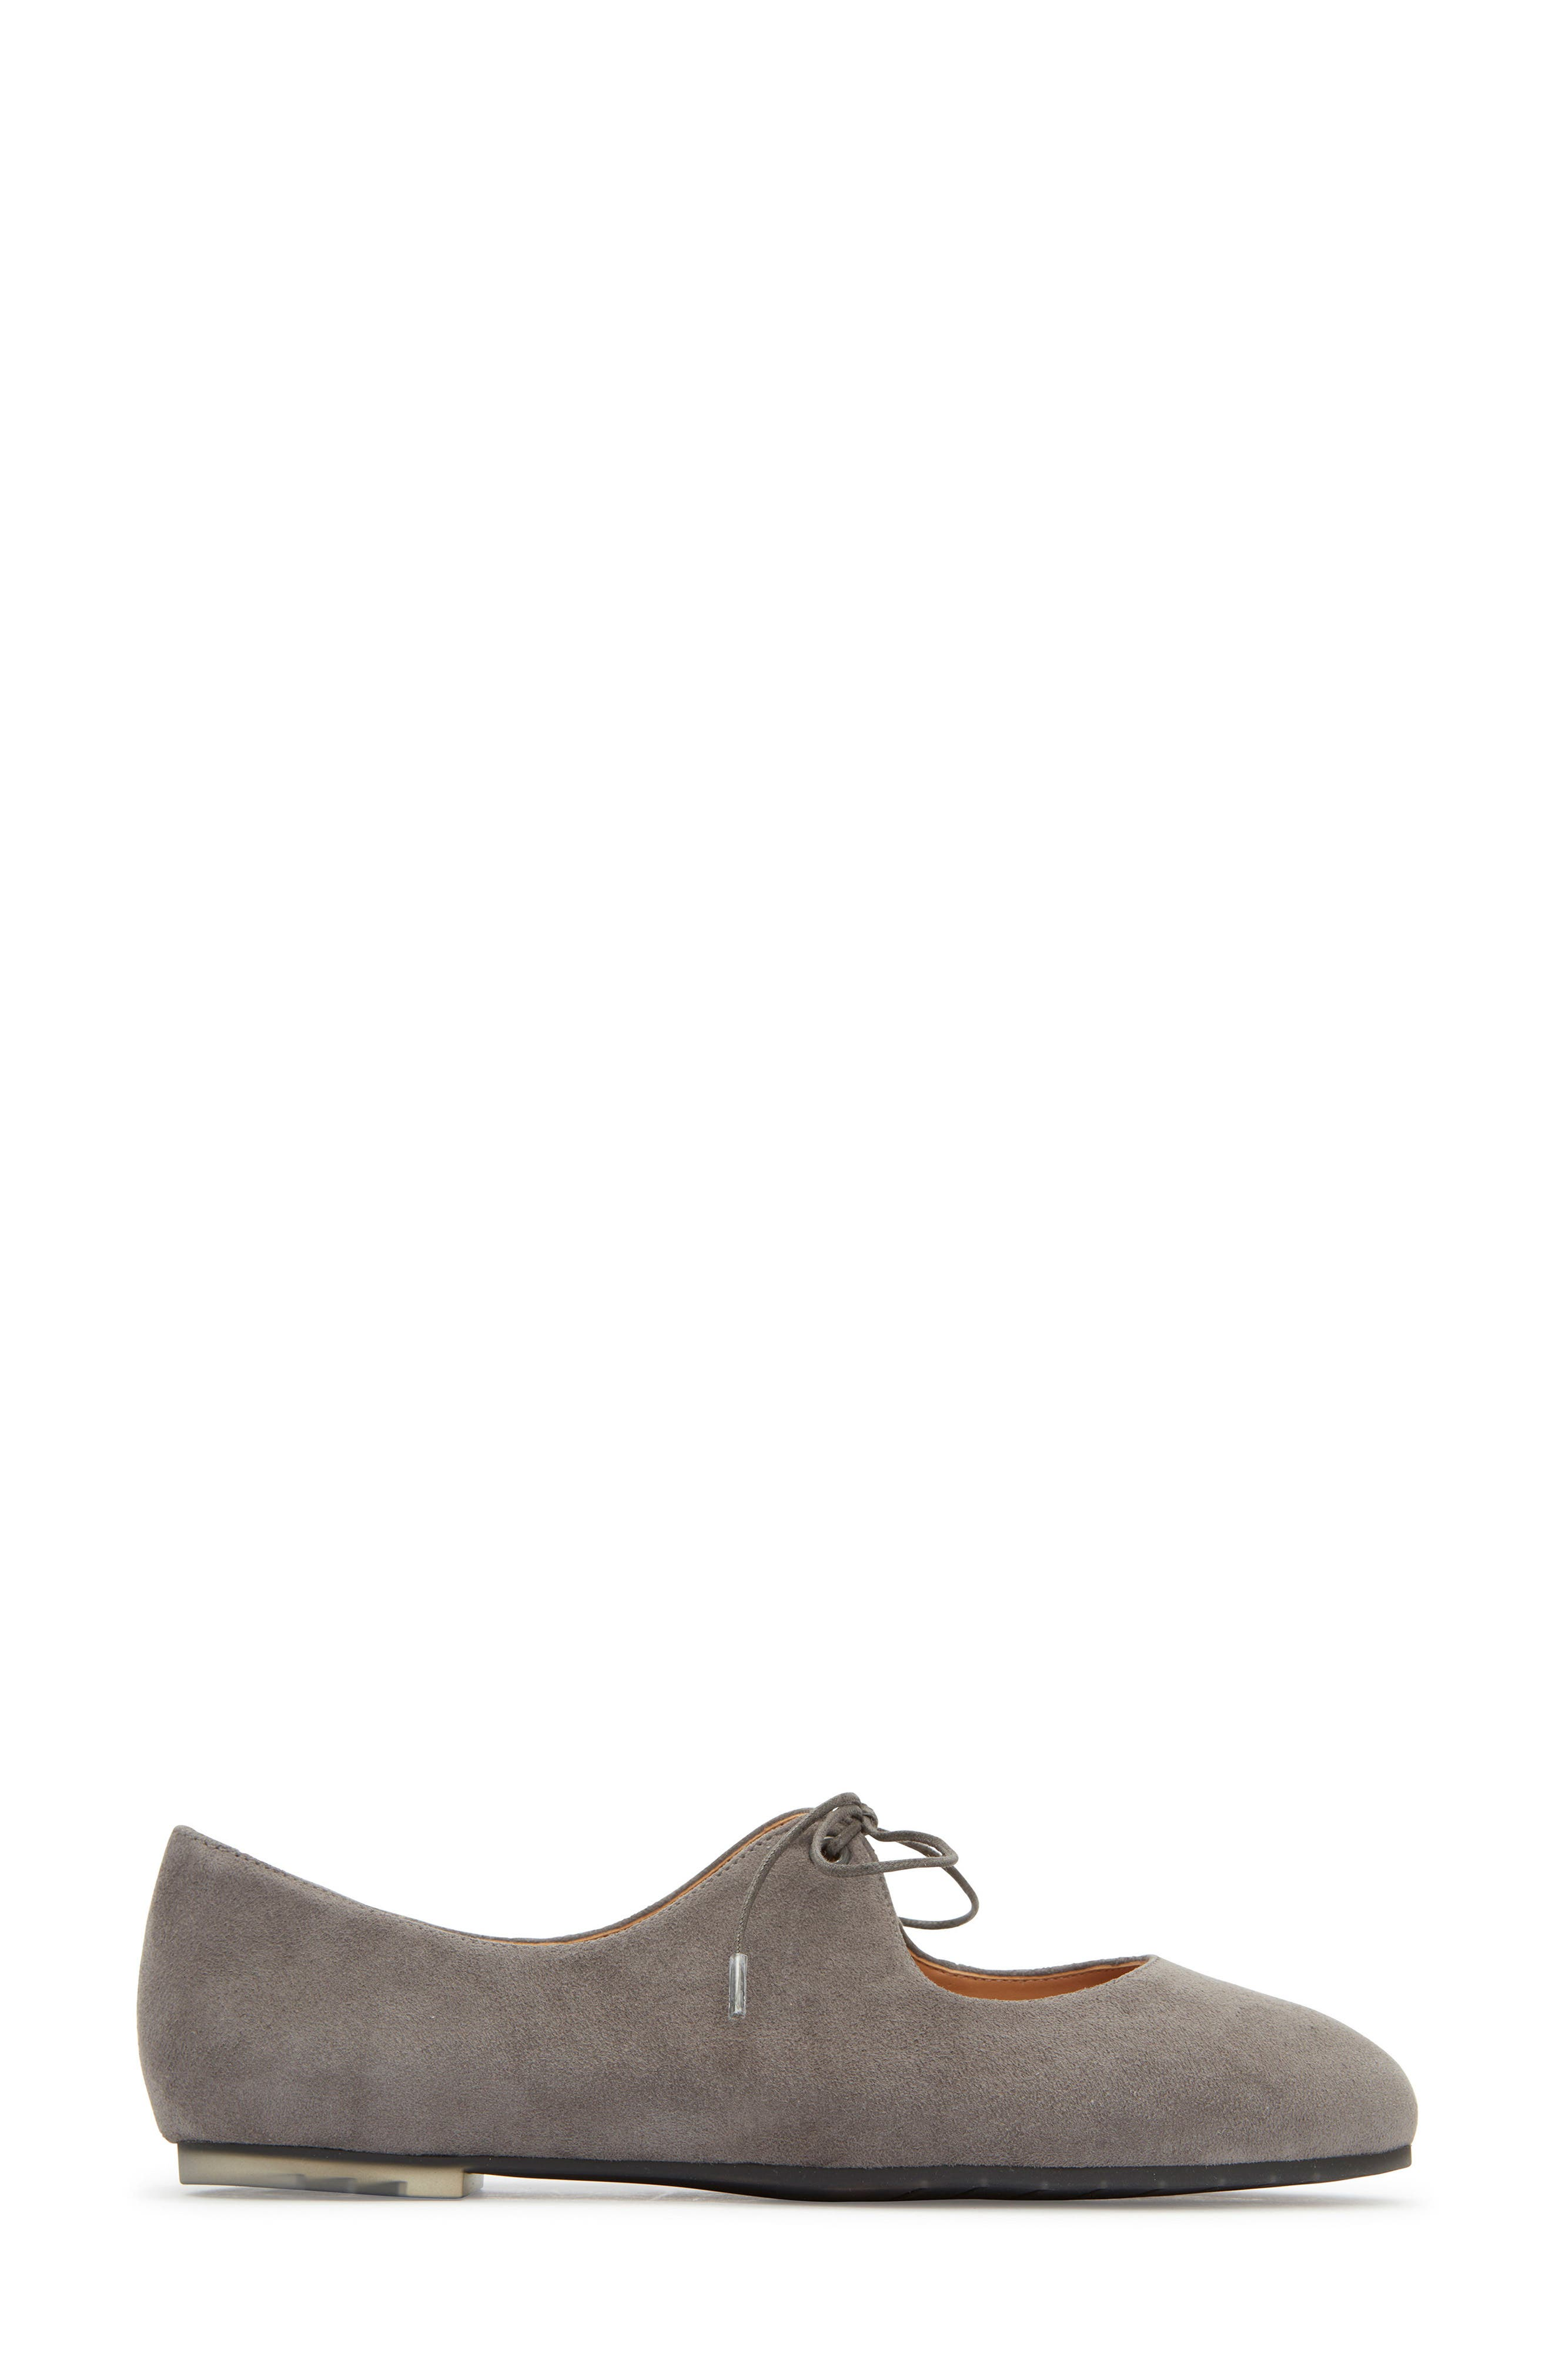 Cacey Mary Jane Flat,                             Alternate thumbnail 3, color,                             Charcoal Suede